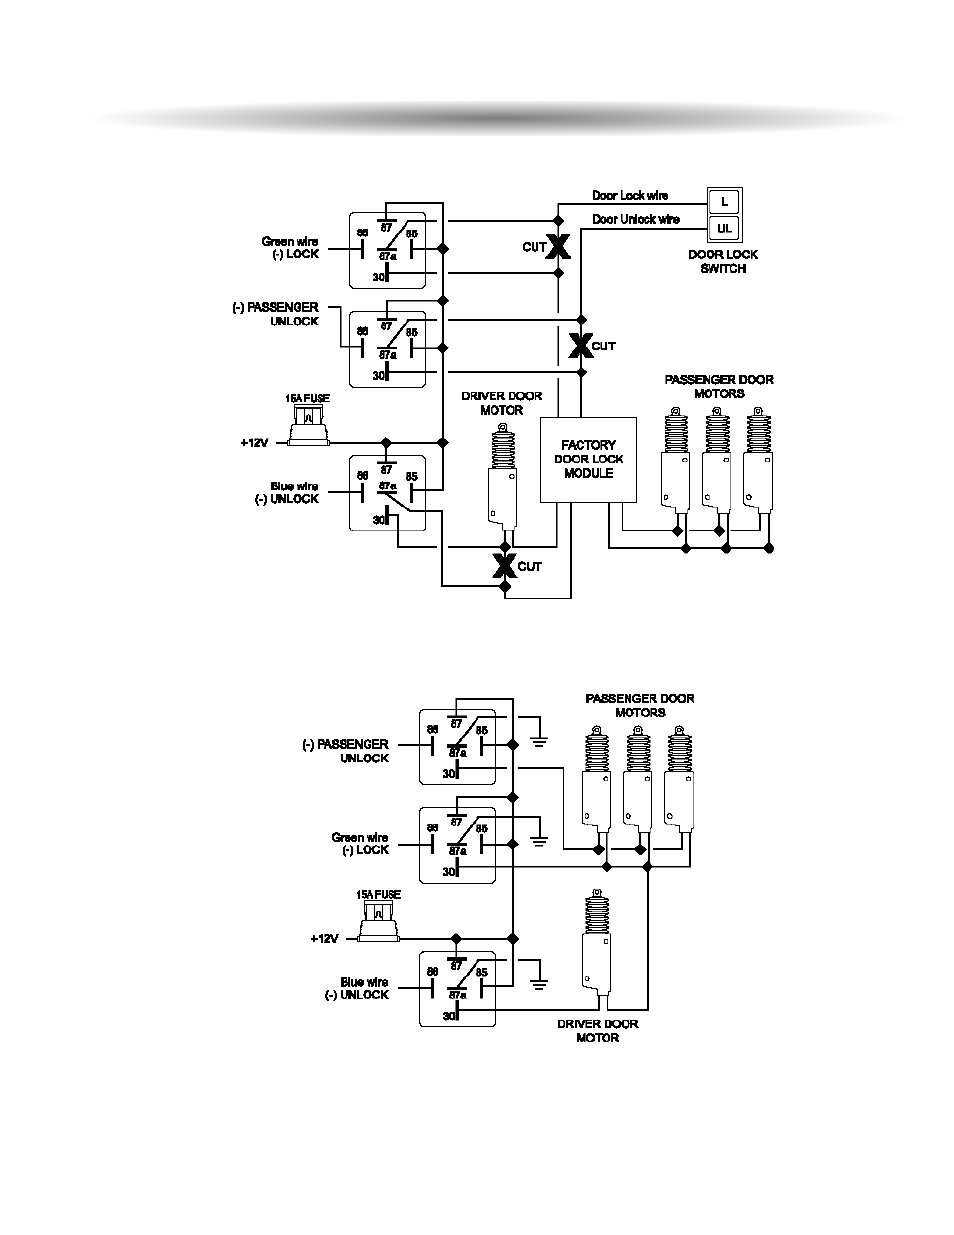 Two stage door lock diagrams cont'd | ScyTek Electronics ASTRA 4000RS User  Manual | Page 30 / 32